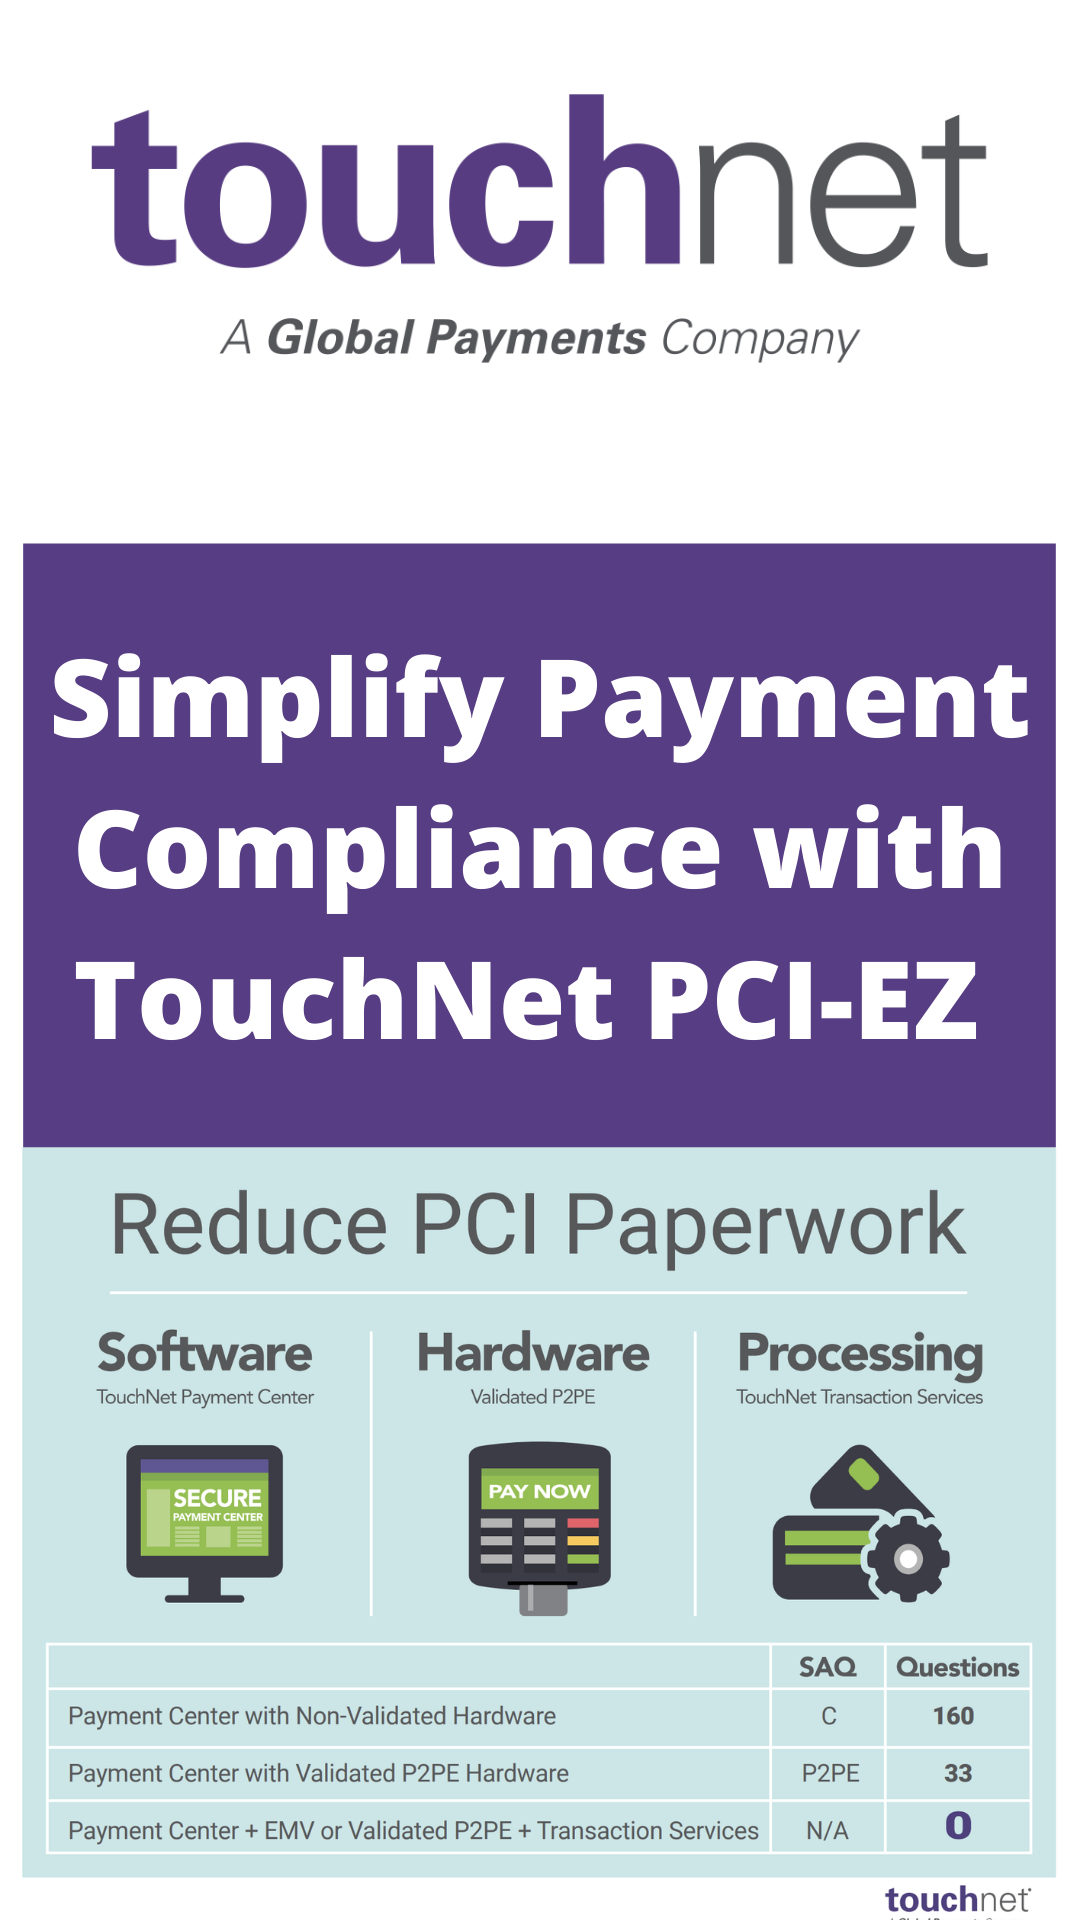 Simplify Payment Compliance with TouchNet PCI-EZ